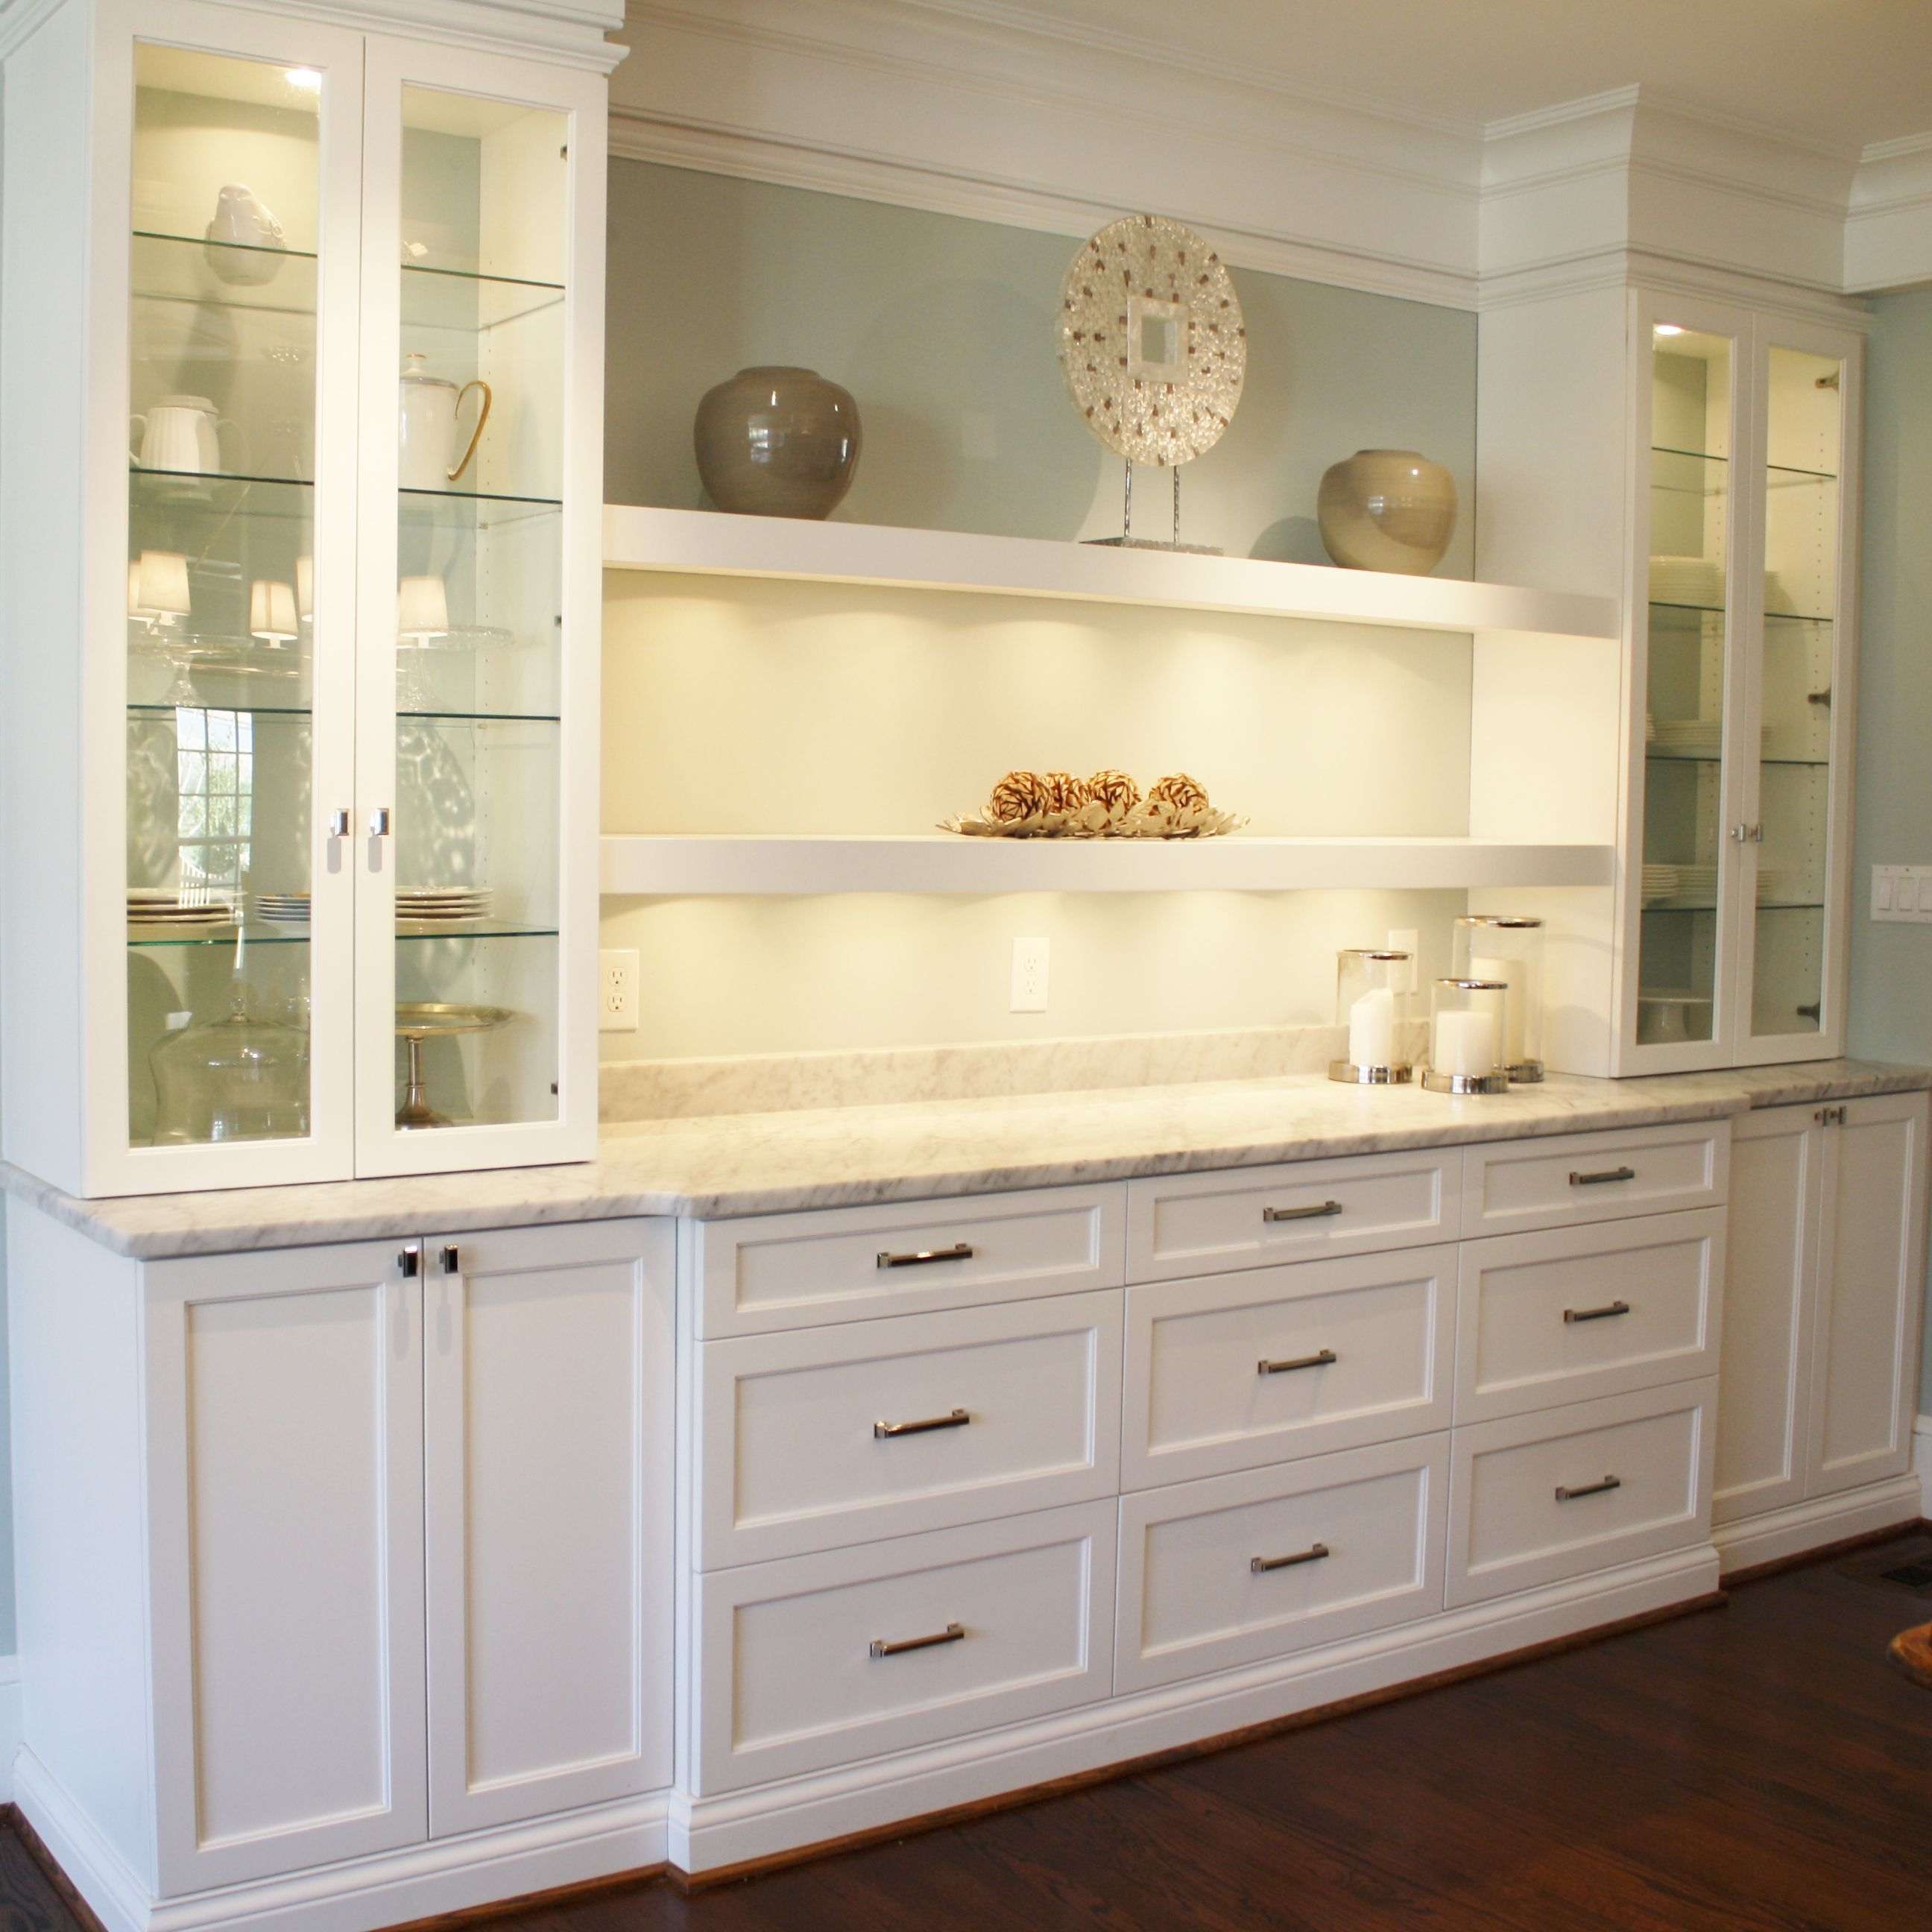 Dining Room Cabinets Ideas: Pin On Cabinet Ideas